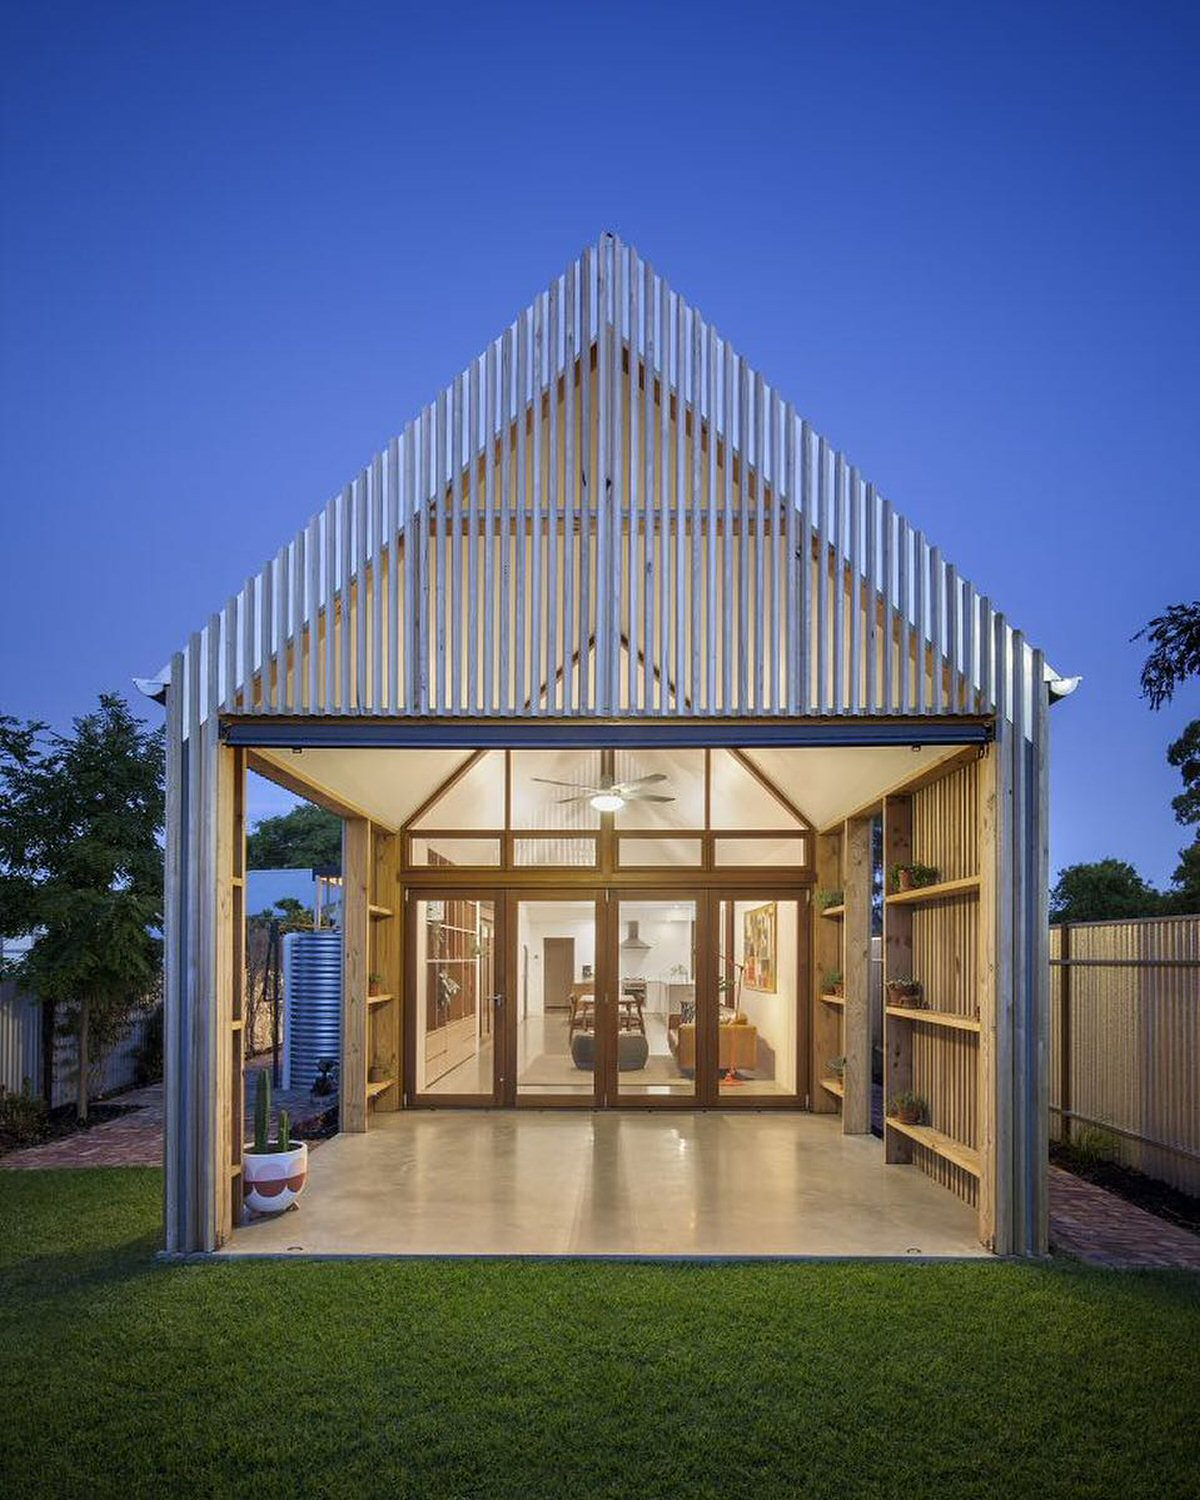 Read this before adding an extension to your home